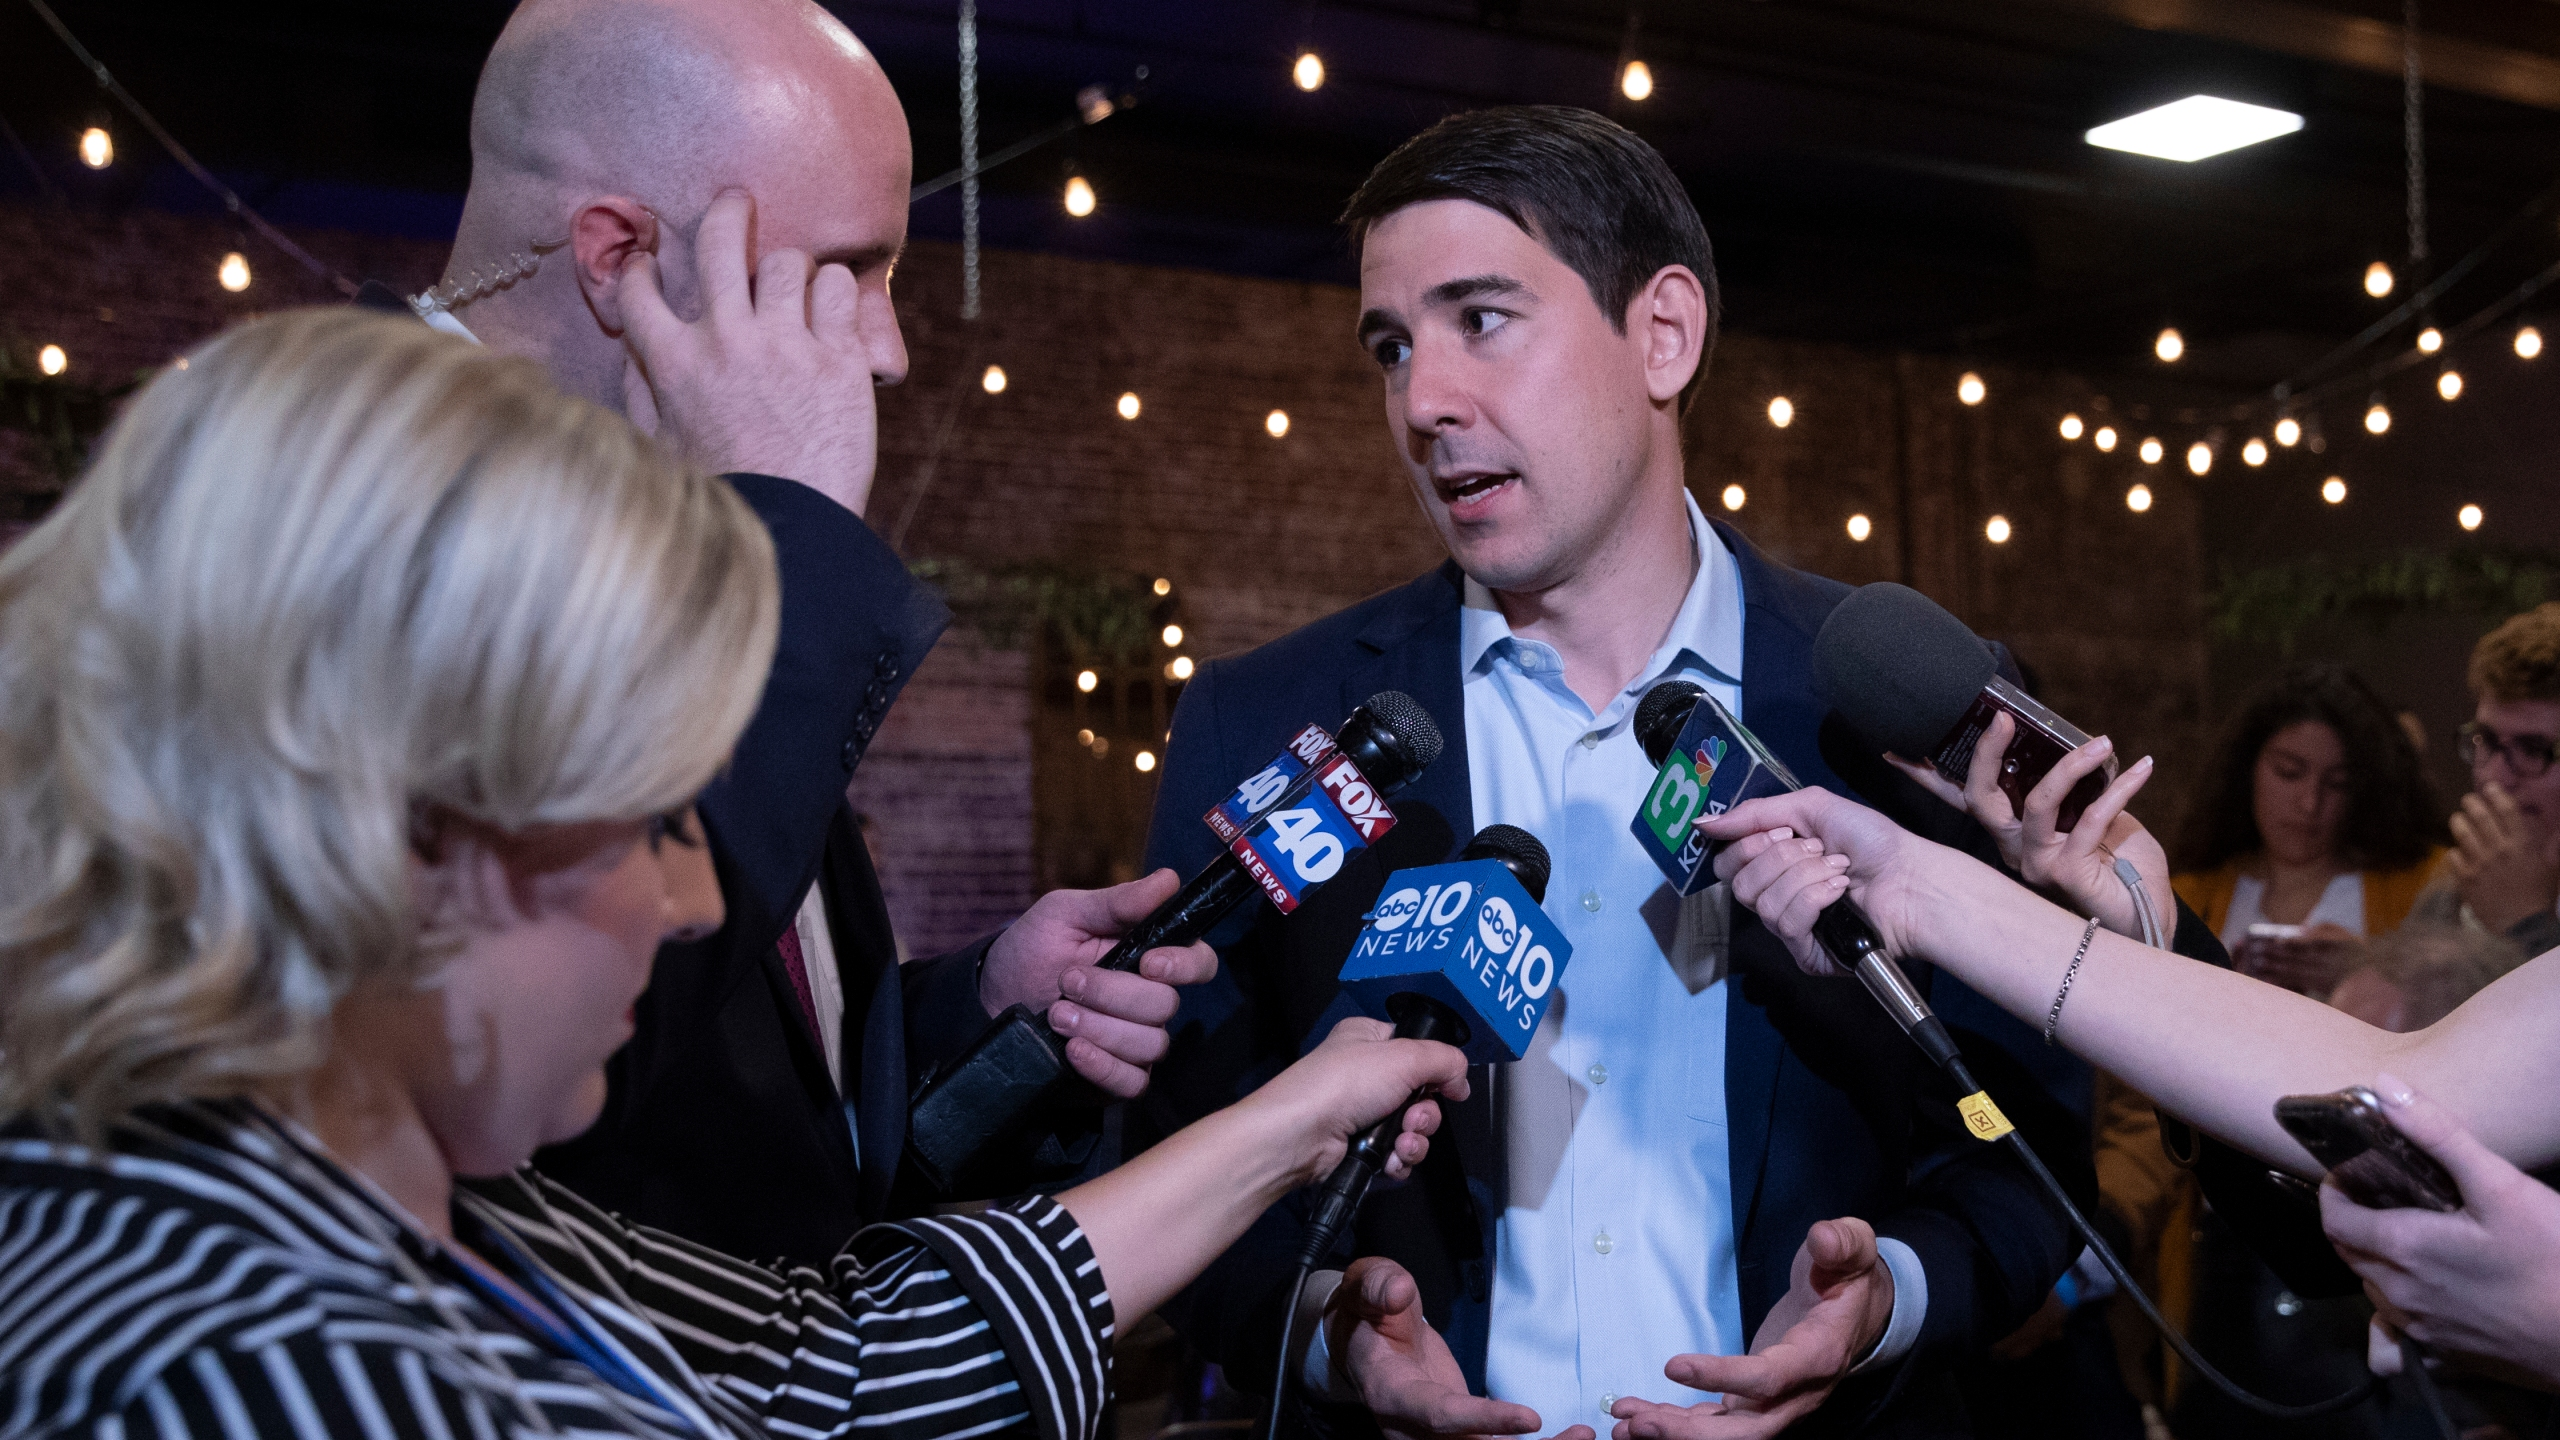 Democratic candidate for California's 10th Congressional District Josh Harder speaks with television reporters during an election night event in Modesto on Nov. 6, 2018. (Credit: Alex Edelman / Getty Images)